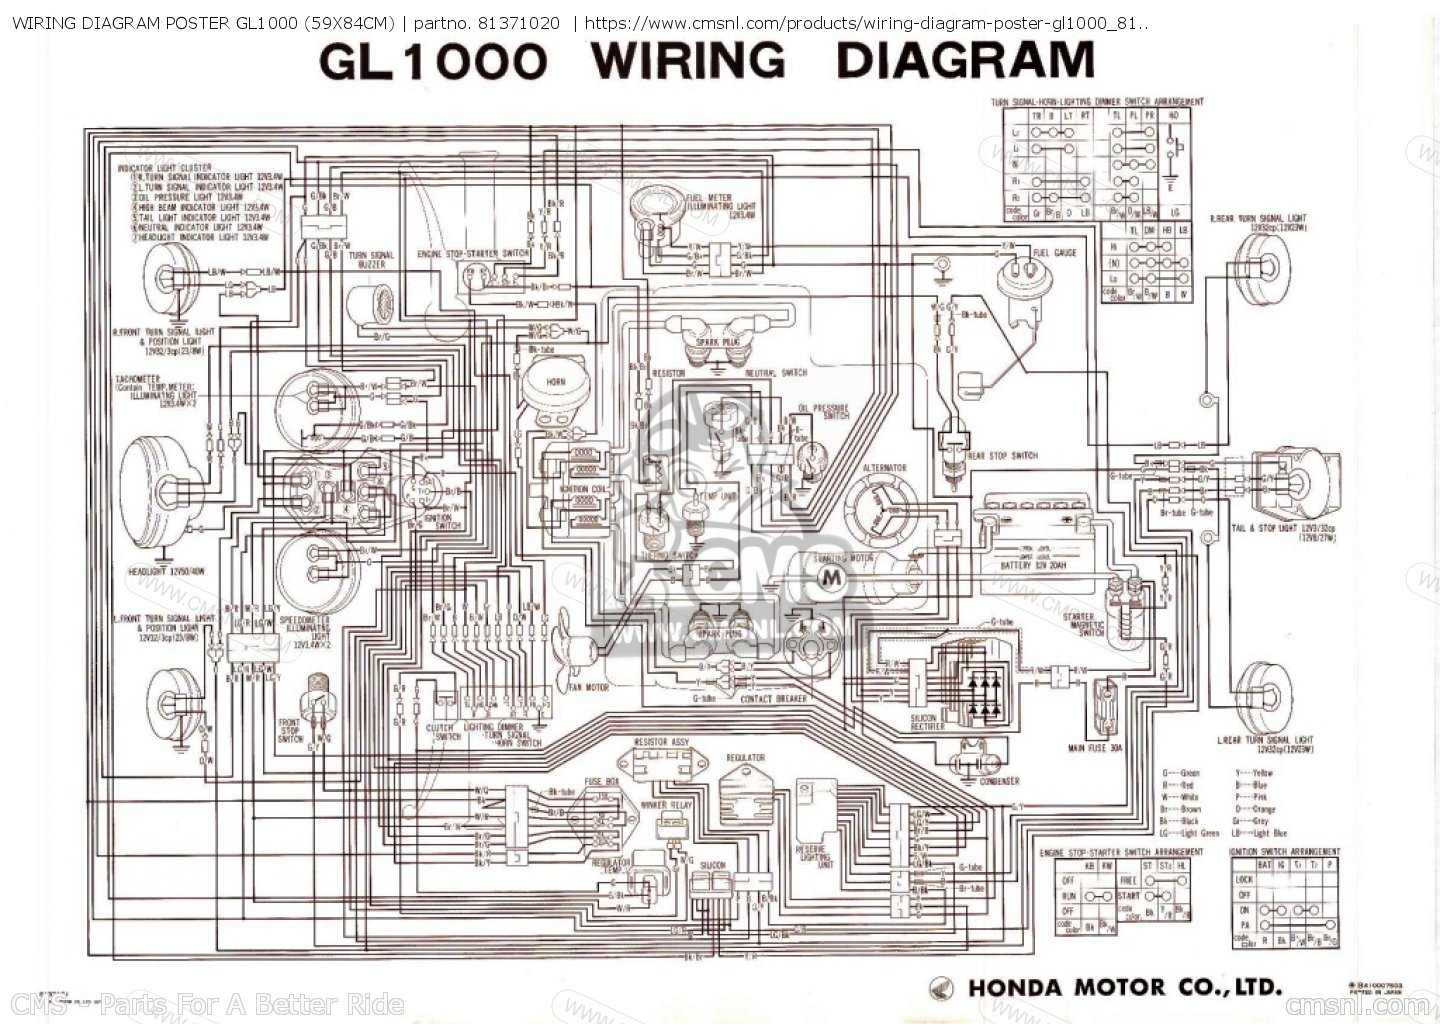 1995 honda prelude radio wiring diagram 7 rv blade 1984 goldwing get free image about